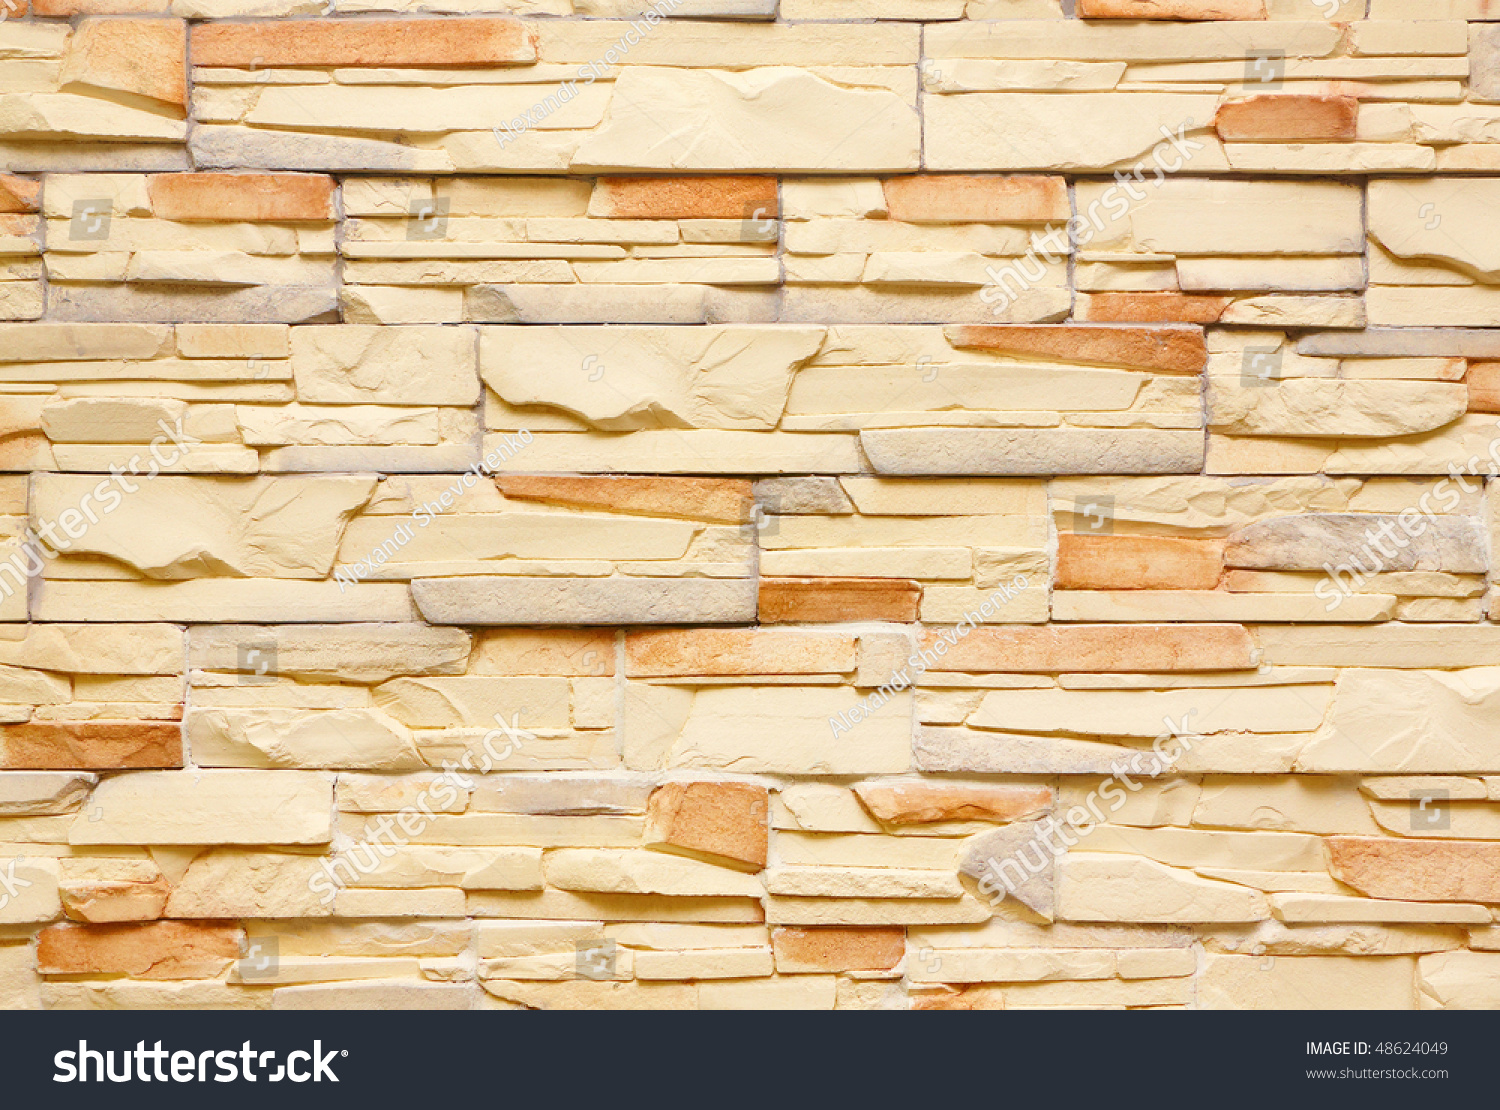 Decorative Tiles Wall Stock Photo (Royalty Free) 48624049 - Shutterstock